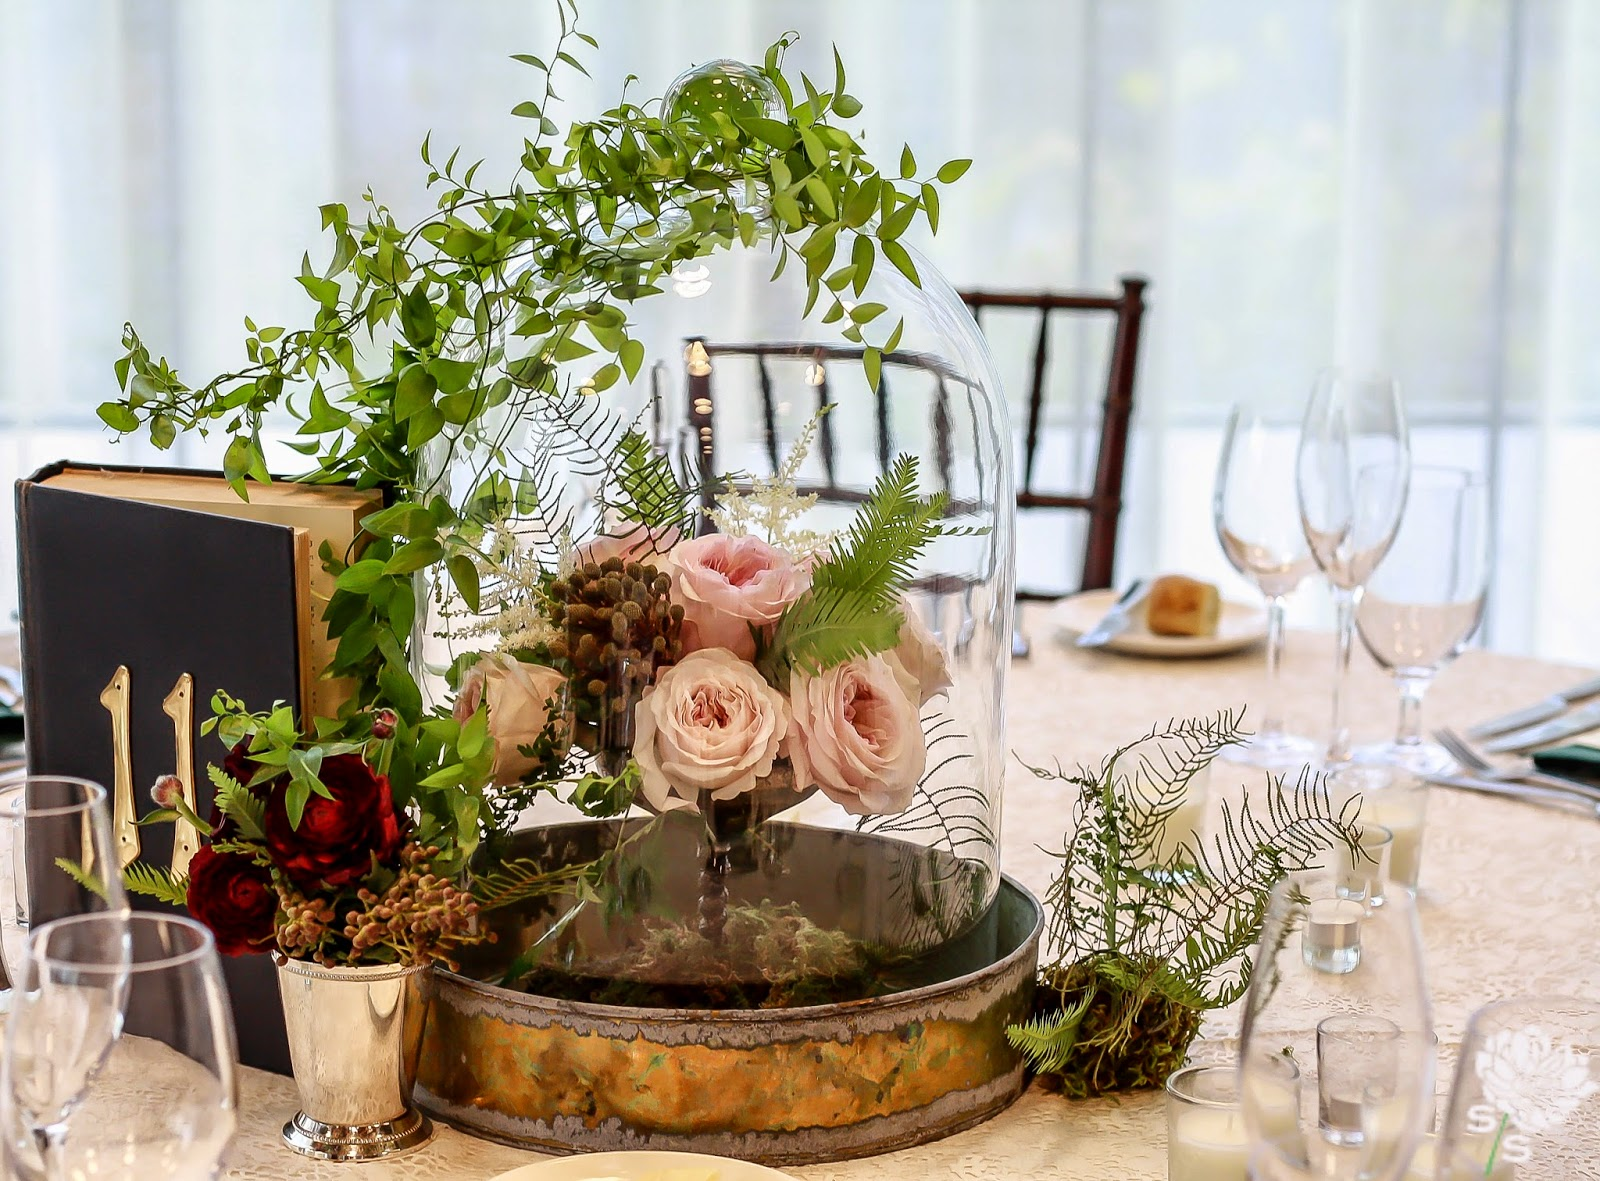 The Roundhouse Wedding - Beacon, NY - Hudson Valley Wedding - Table Centerpiece - Glass Cloch, Mint Julep Cup, Compote Dish Old Books - Wedding Flowers - Splendid Stems